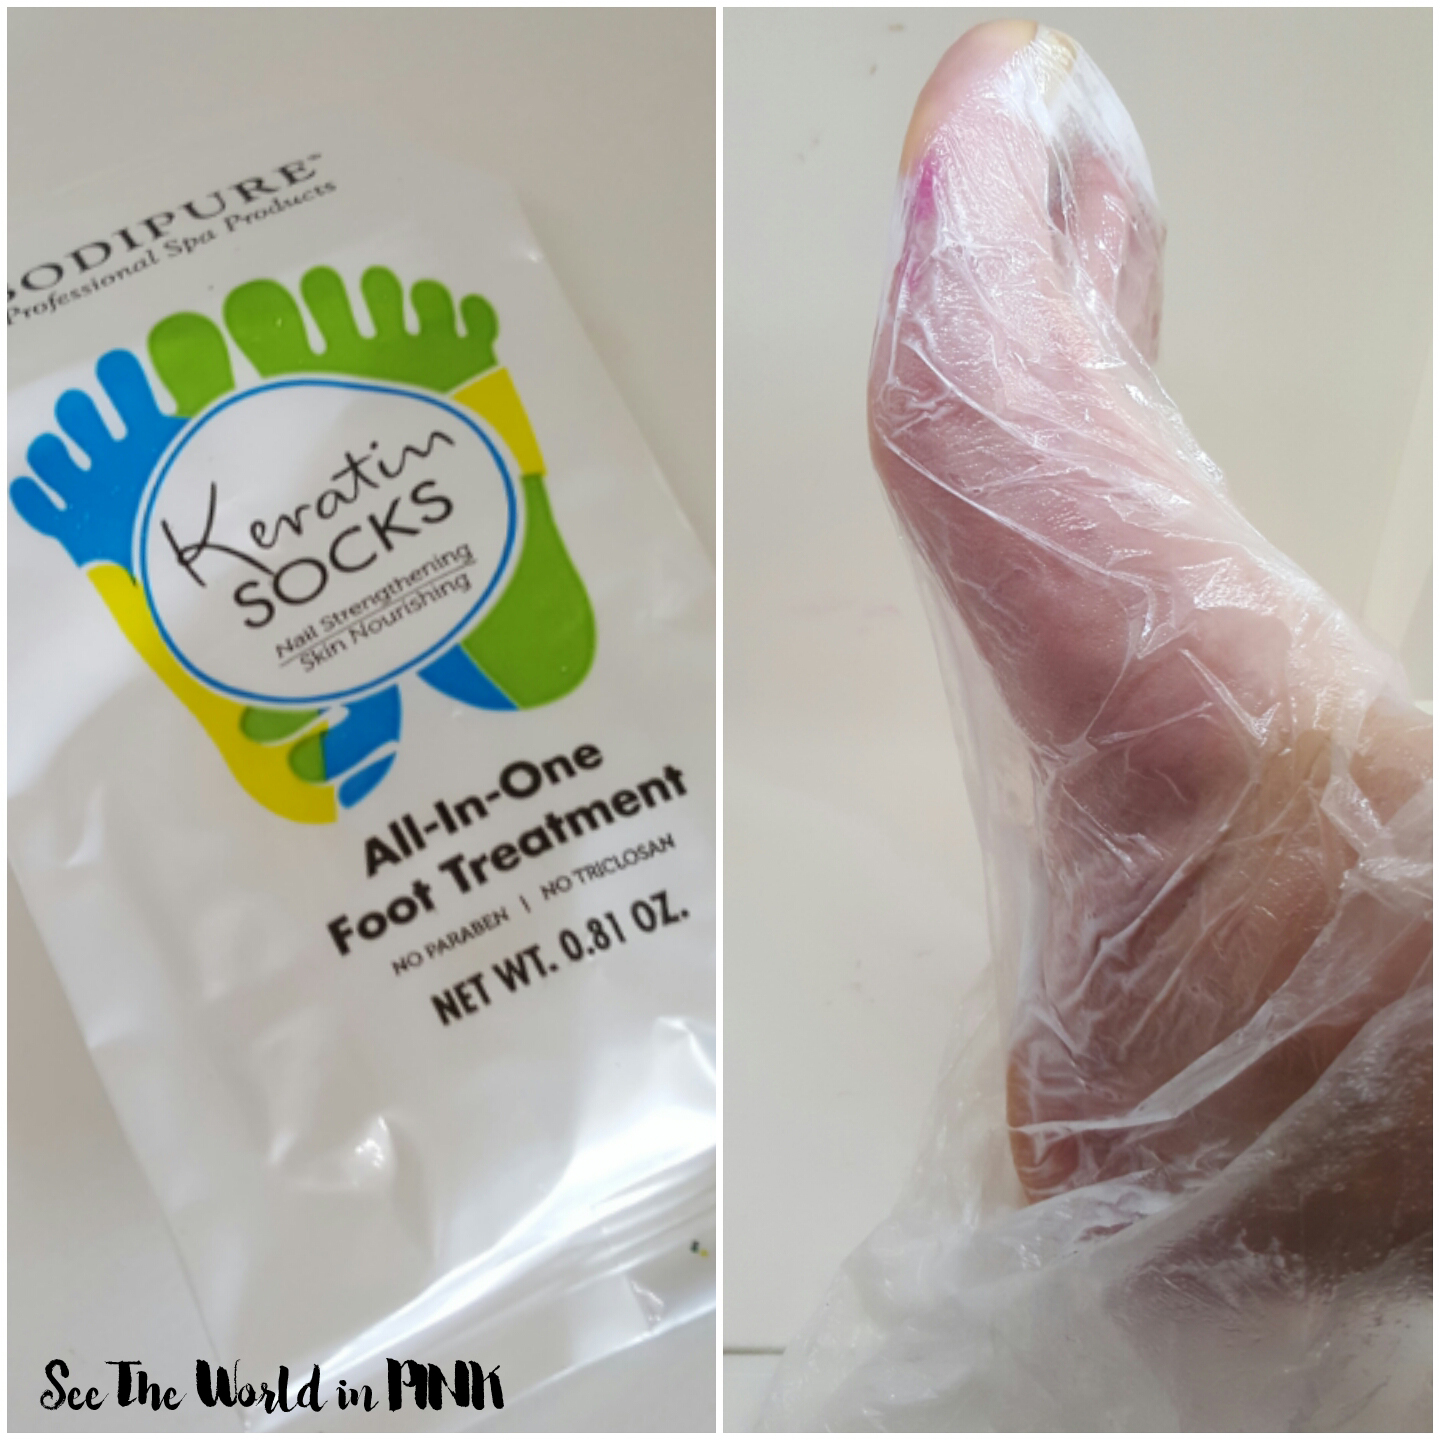 bodypure keratin gloves and socks